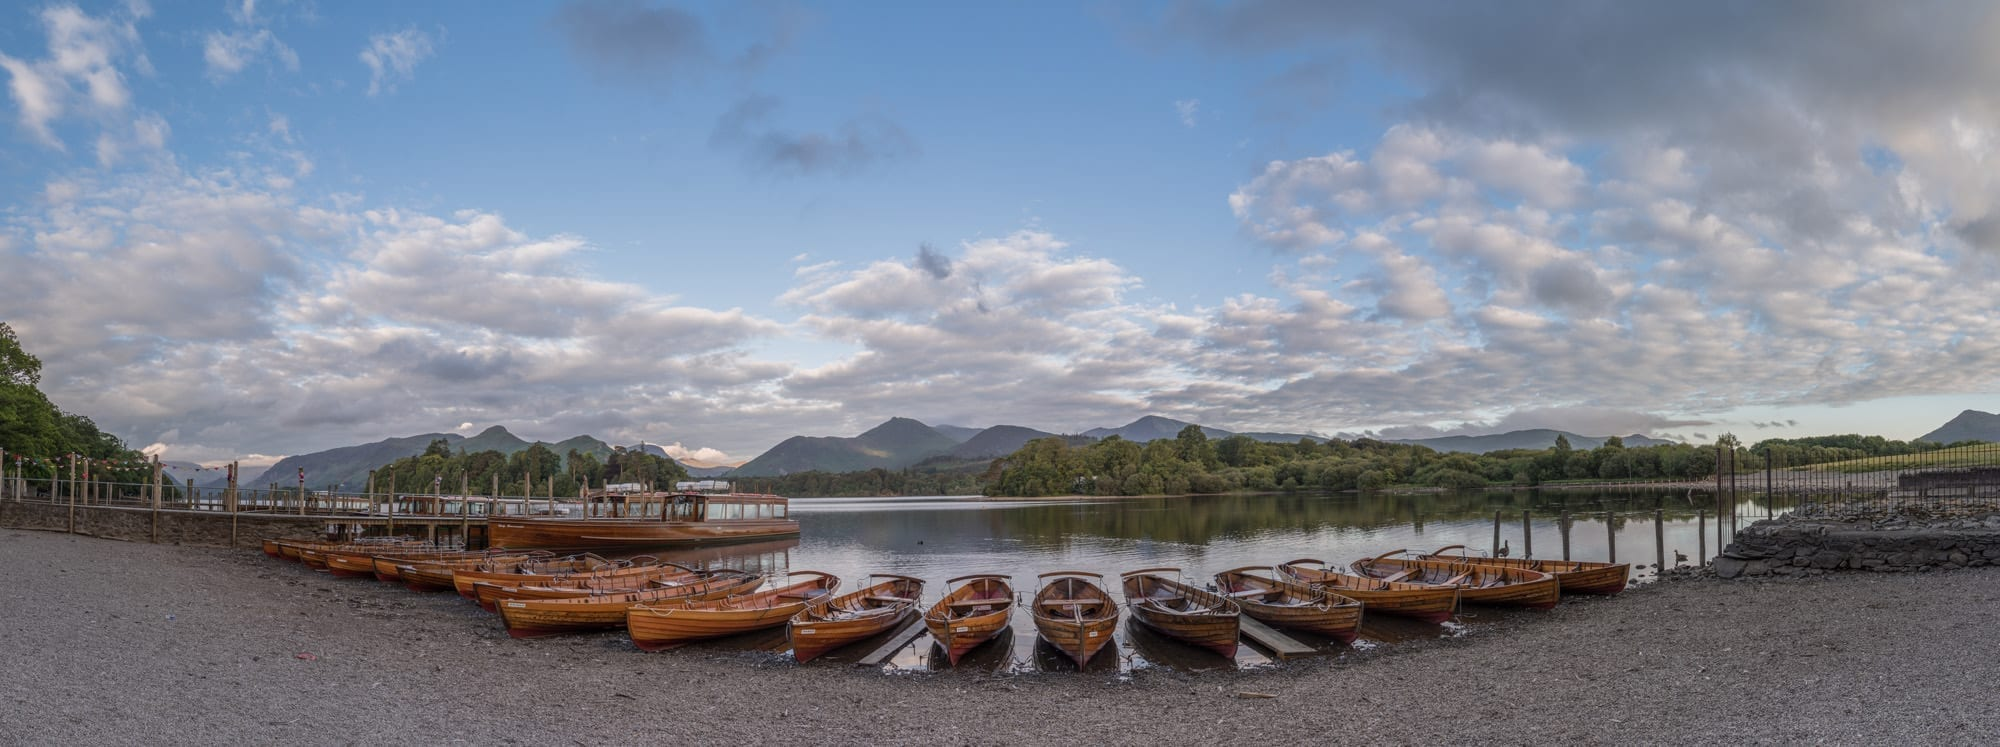 Derwent Water Boat Landings - Lake District Photography